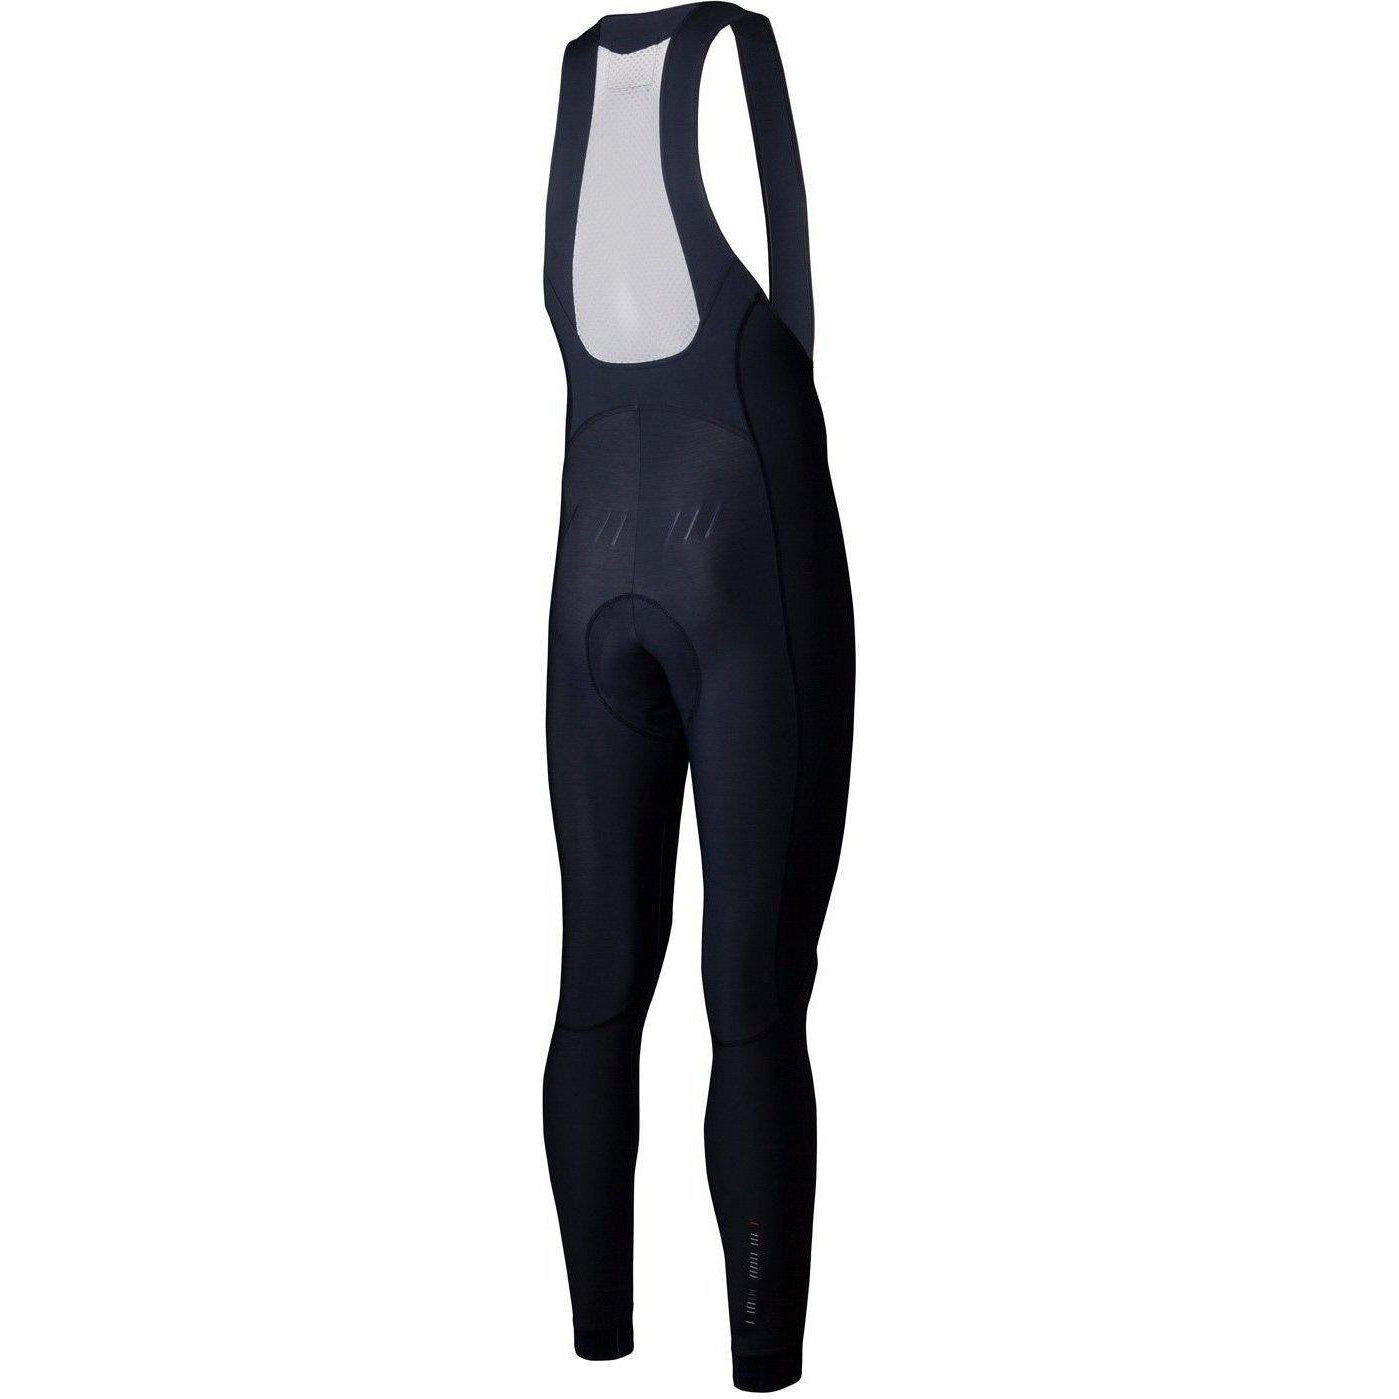 Chpt3-Chpt3 OG 1.13 Bibtights--saddleback-elite-performance-cycling